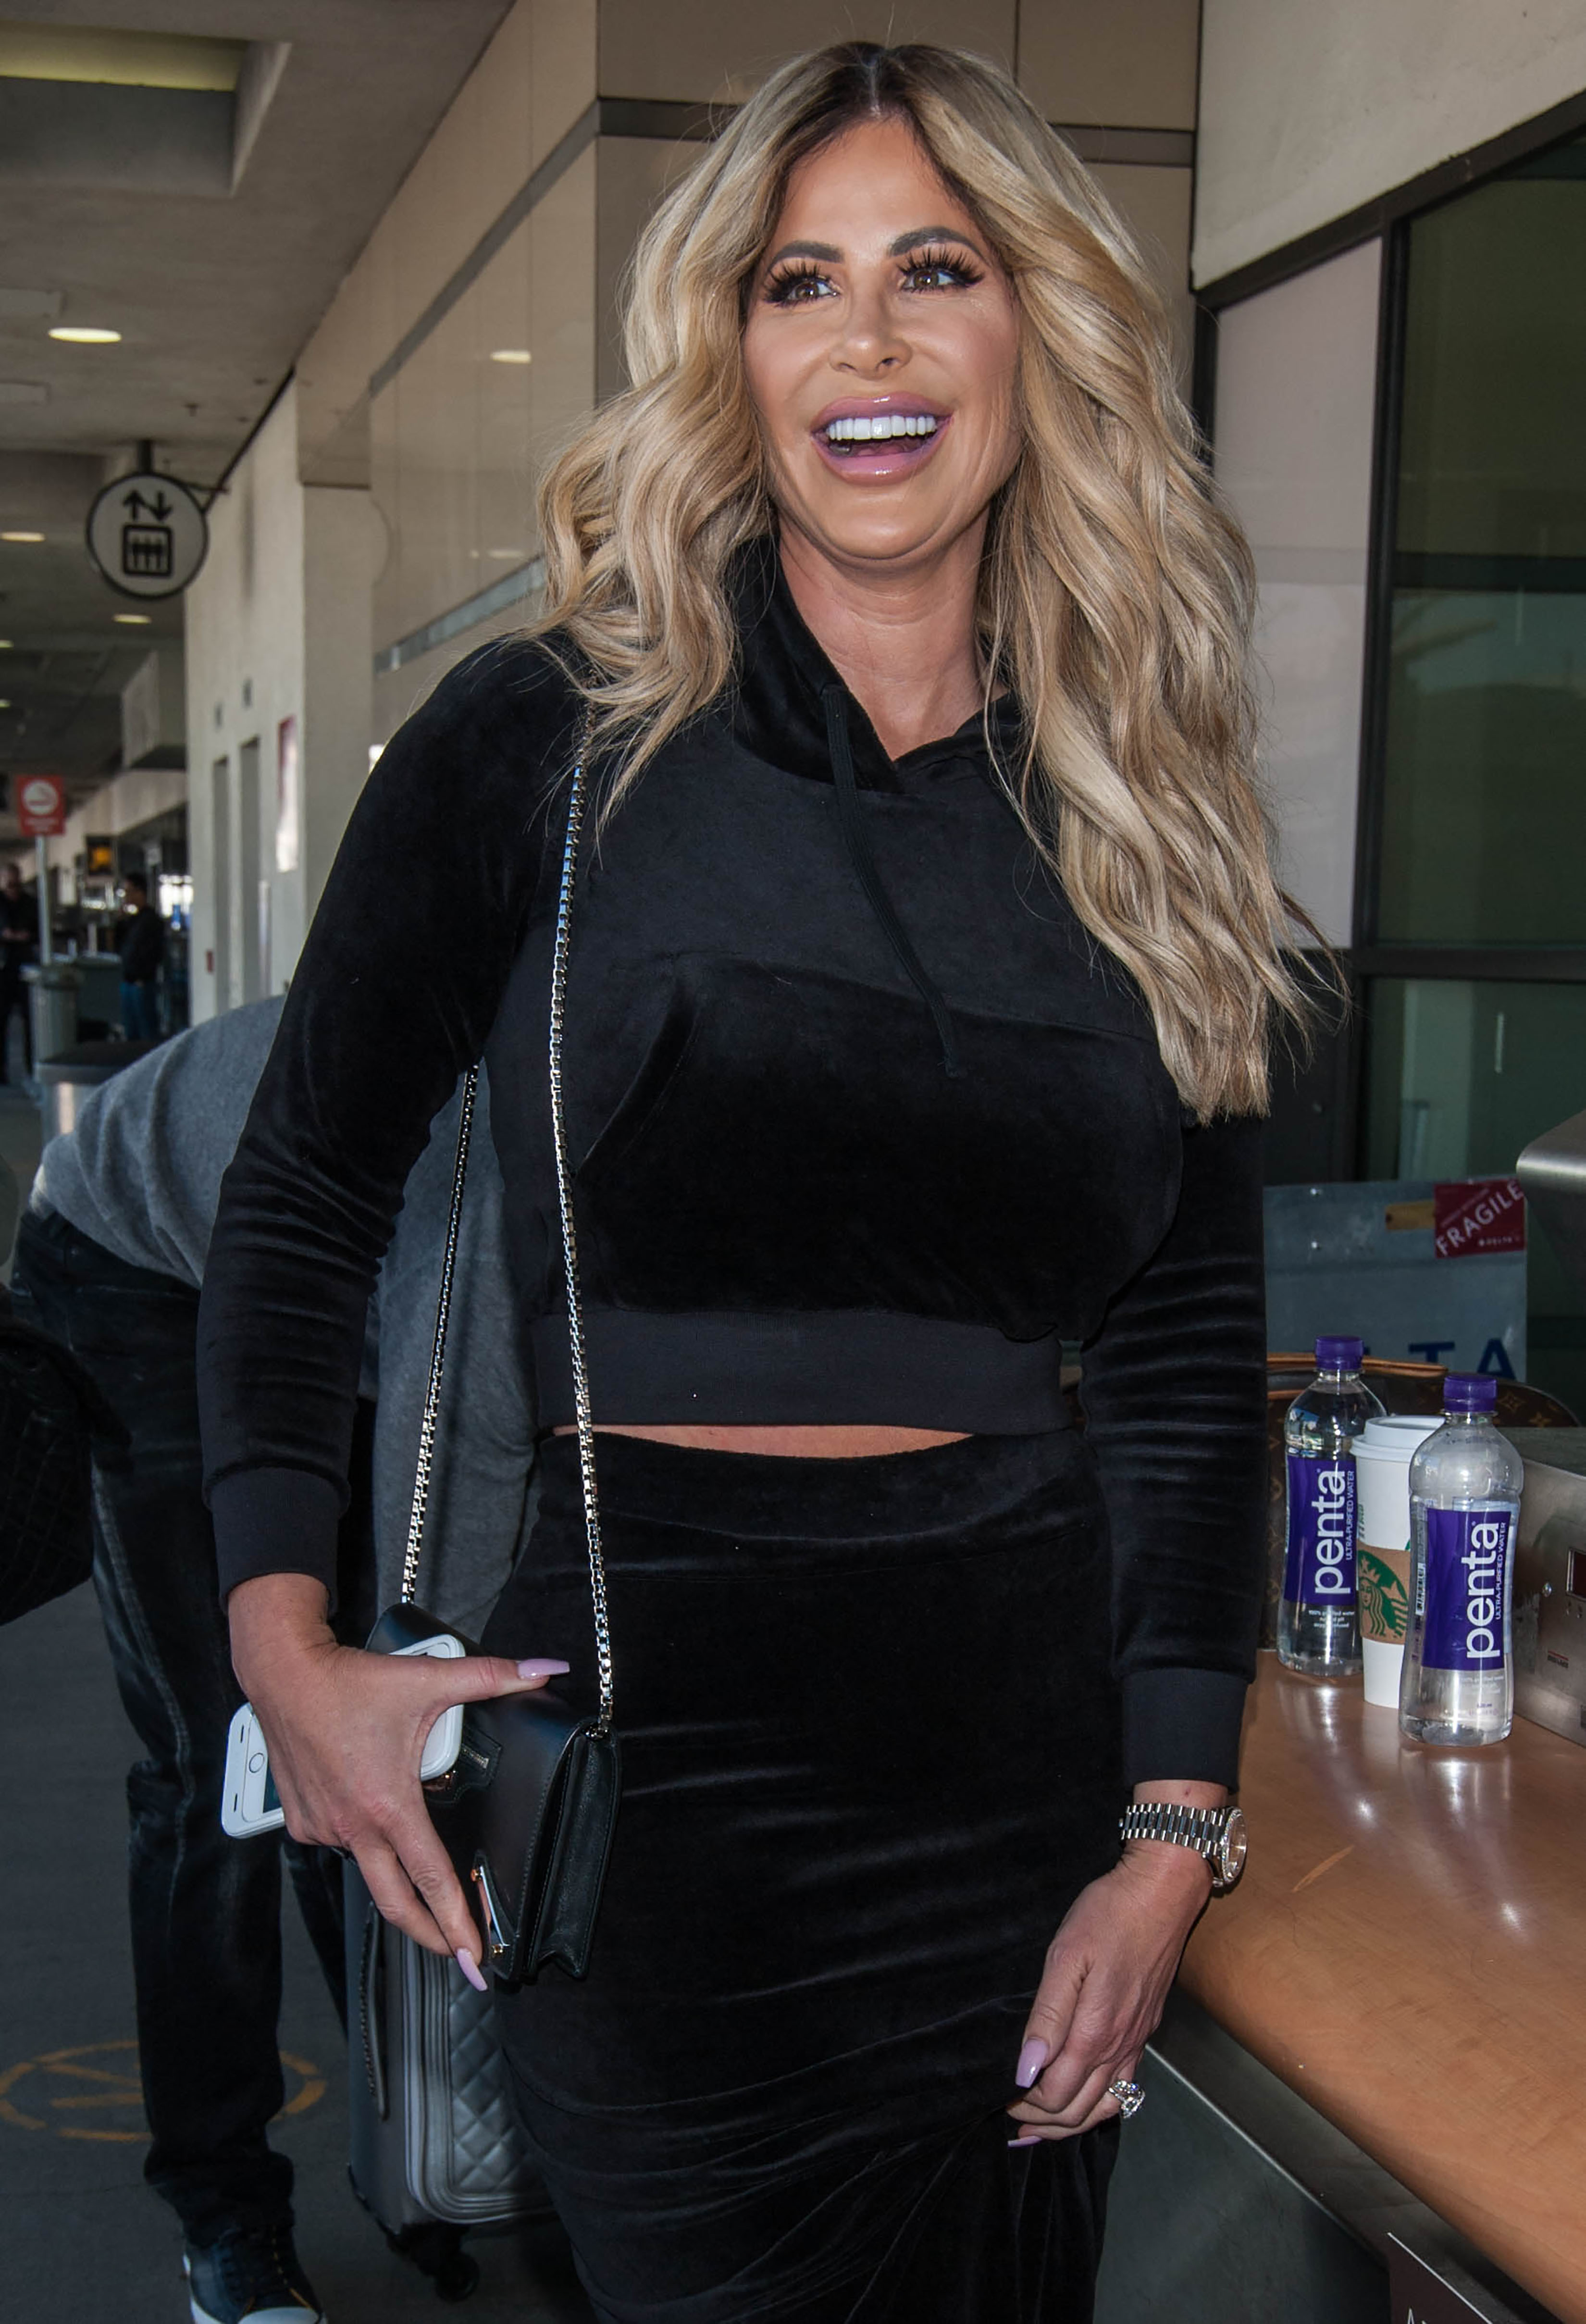 Kim Zolciak leaves LAX airport in Los Angeles on March 1, 2017.